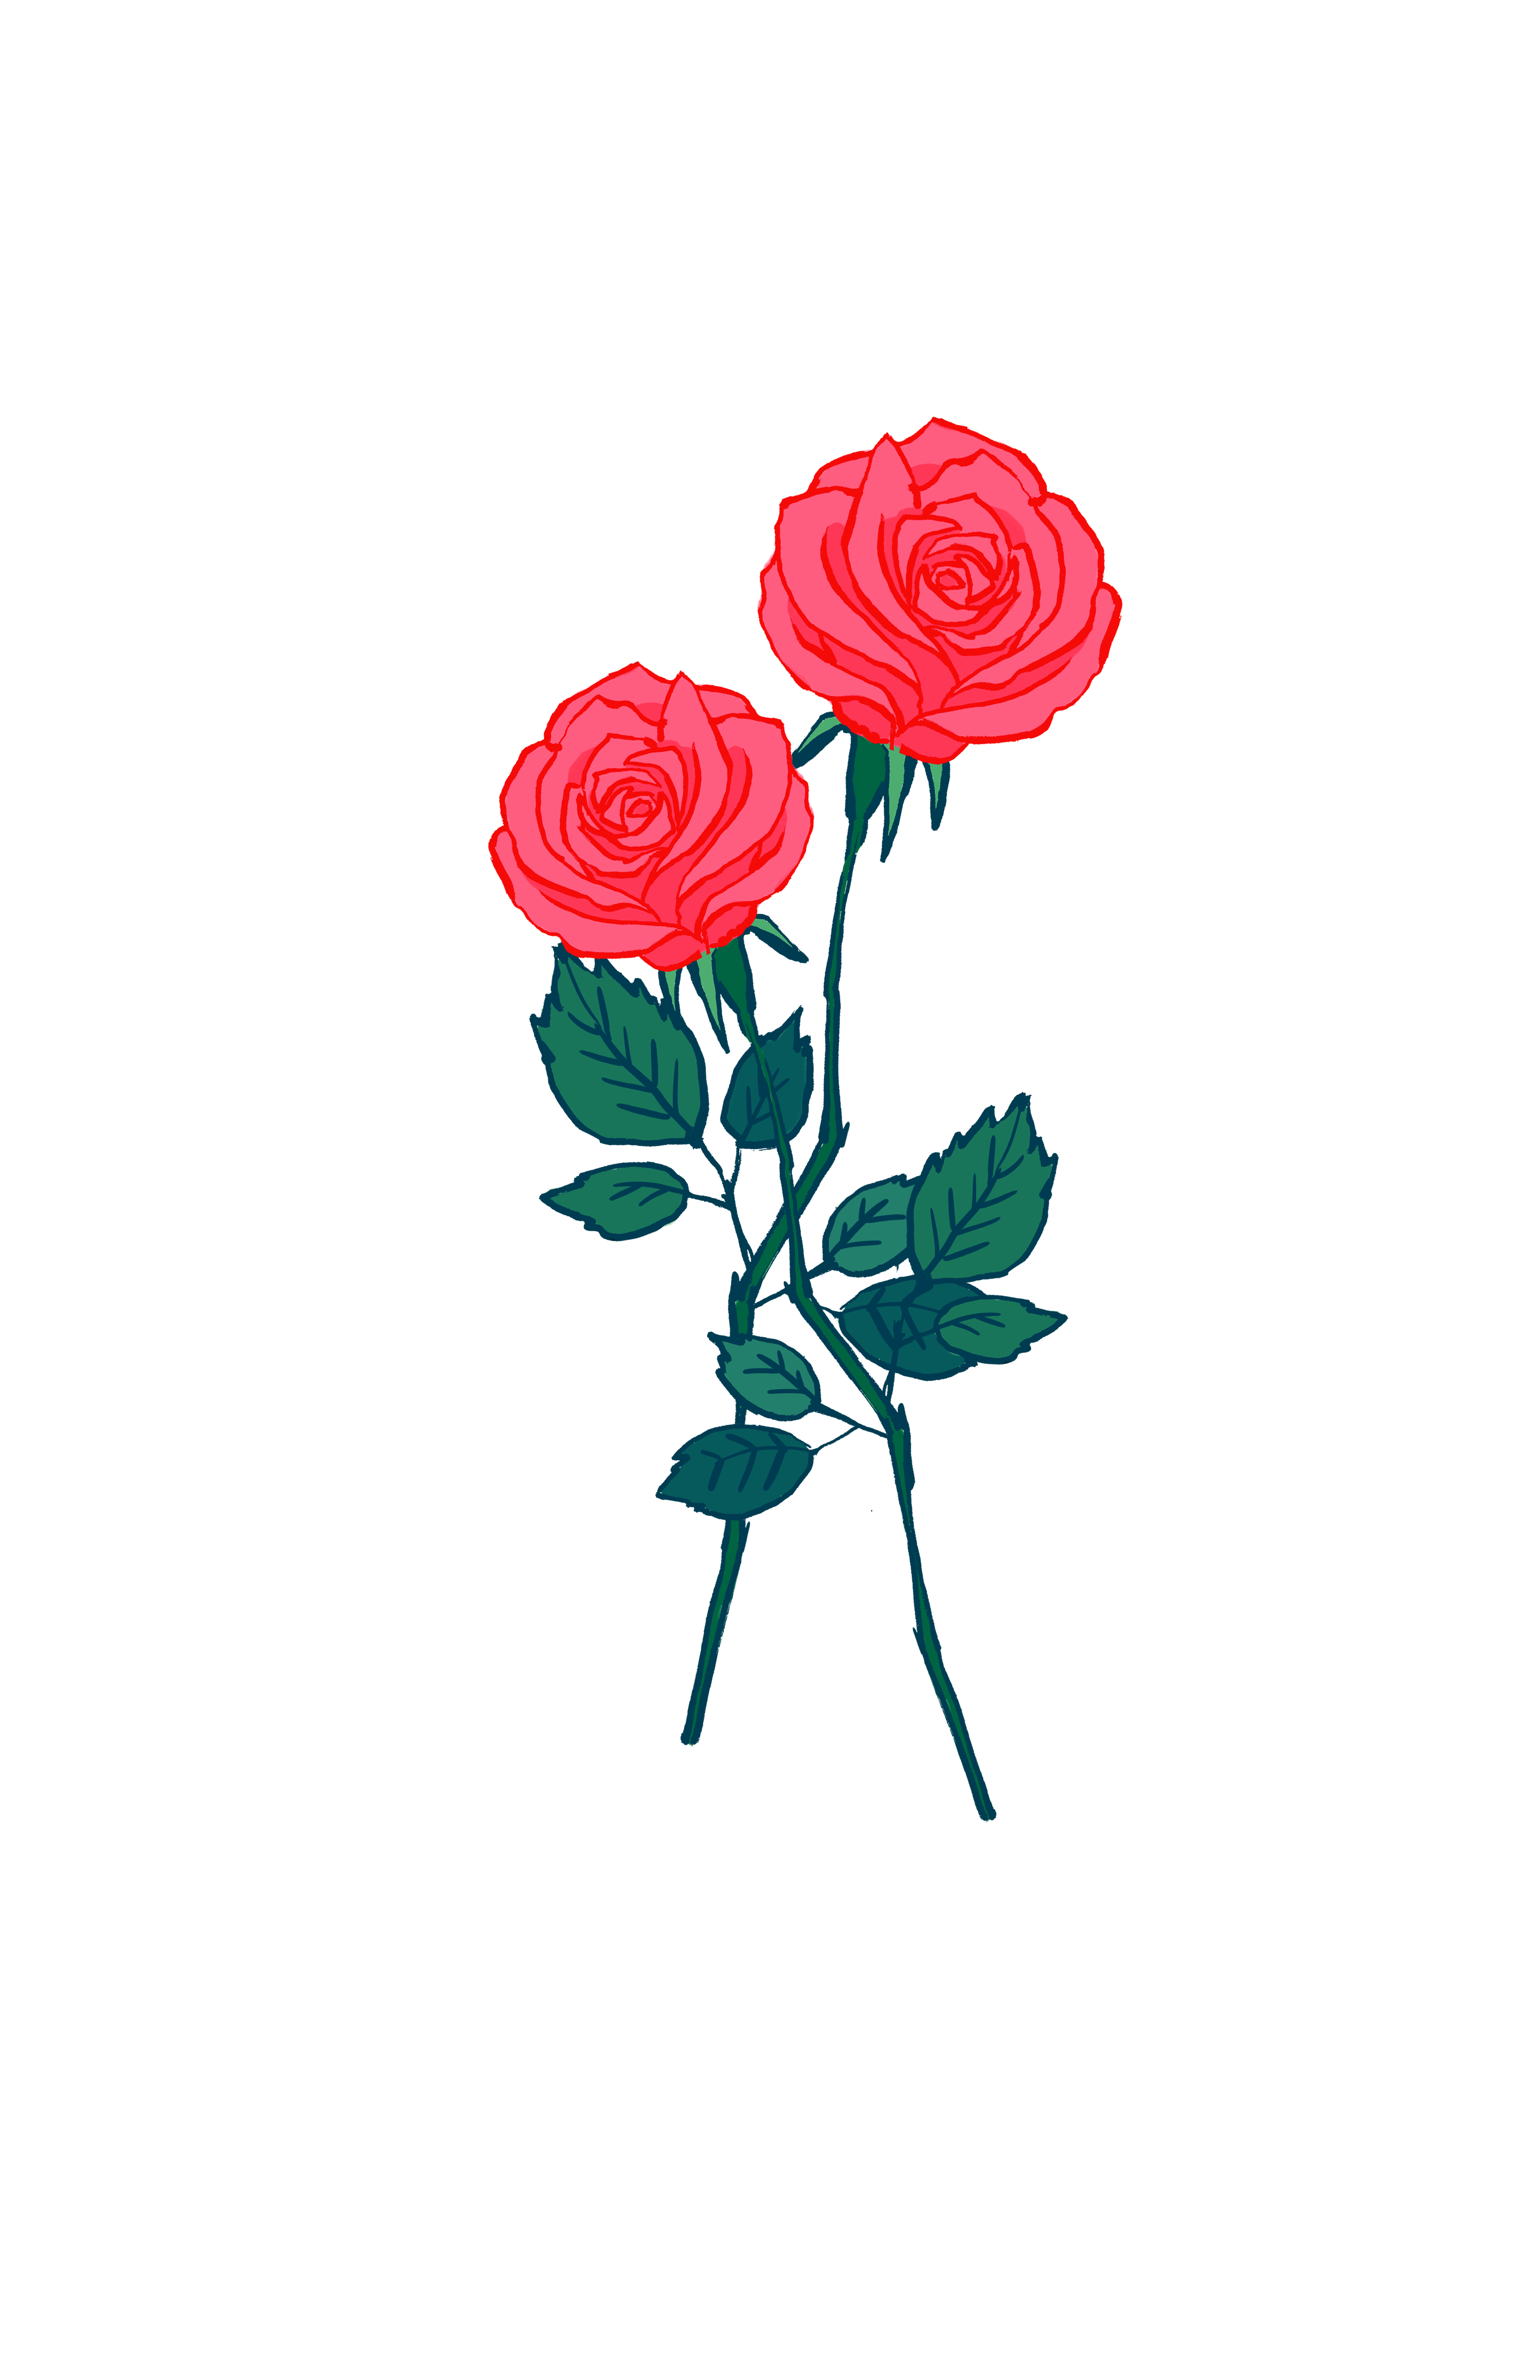 Rose Drawing Wallpapers Top Free Rose Drawing Backgrounds Wallpaperaccess